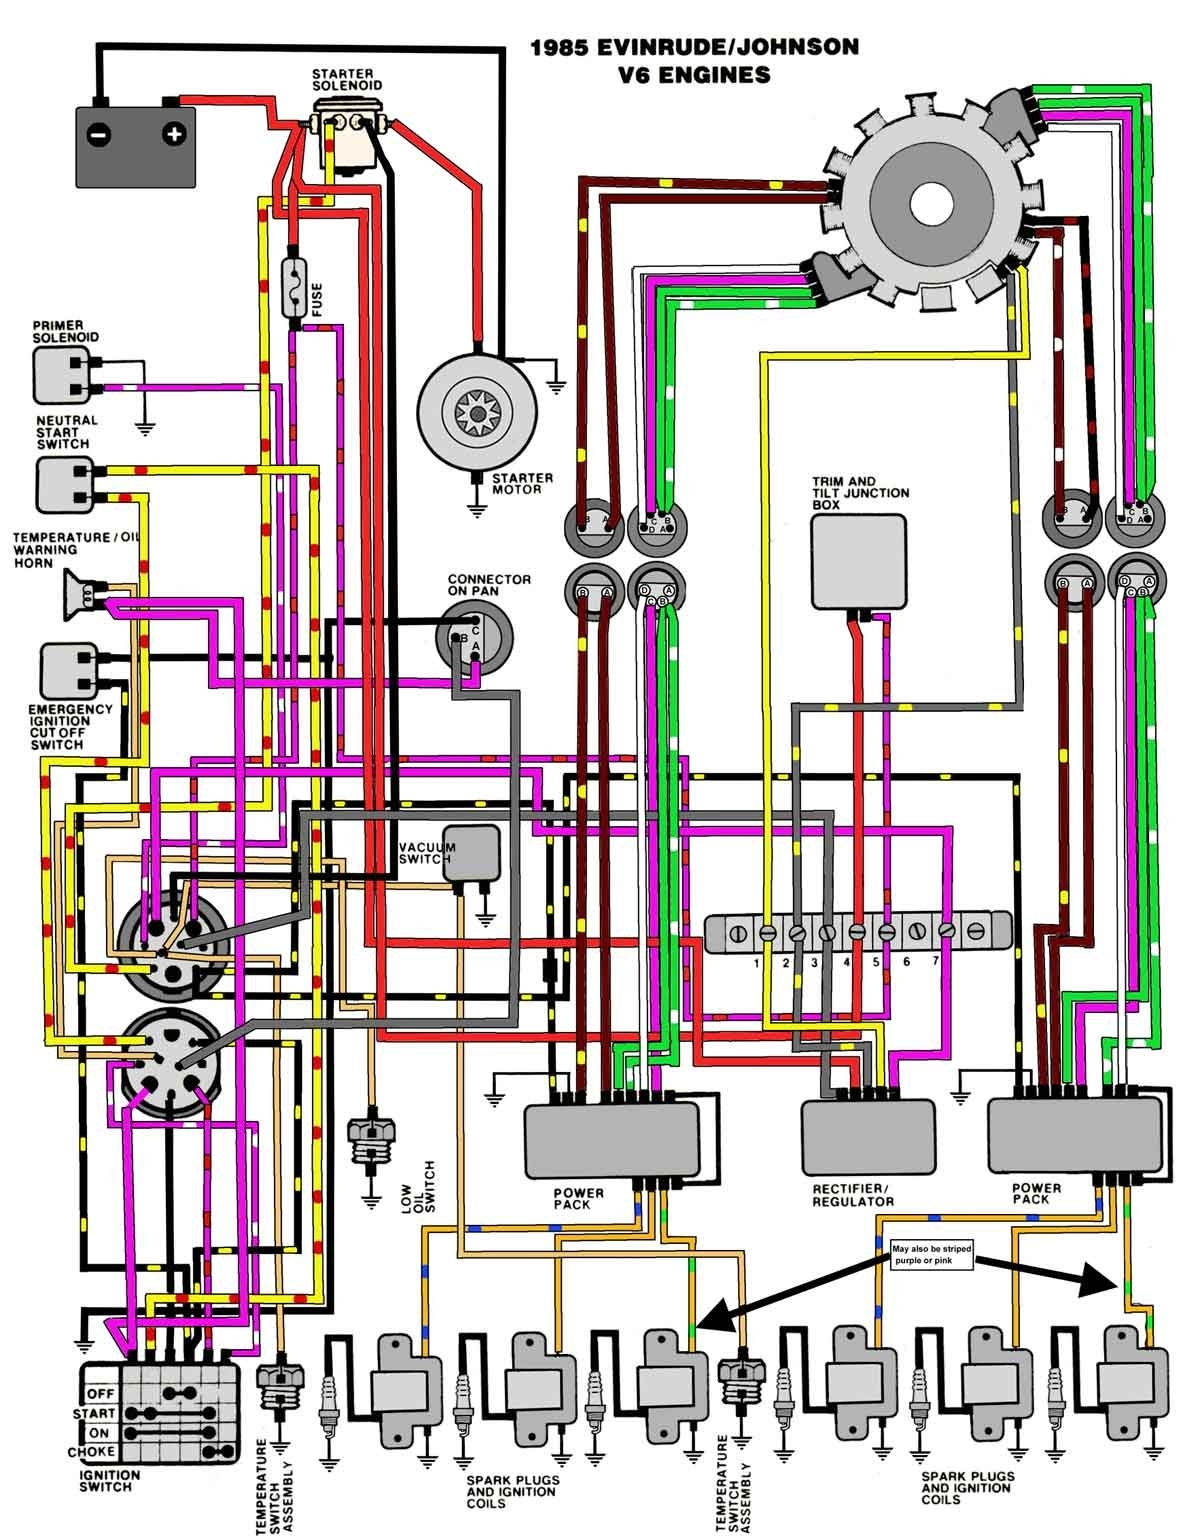 mastertech marine evinrude johnson outboard wiring diagrams within 76 evinrude wiring diagram 76 evinrude wiring diagram wiring diagram shrutiradio wiring diagram for johnson outboard motor at bayanpartner.co